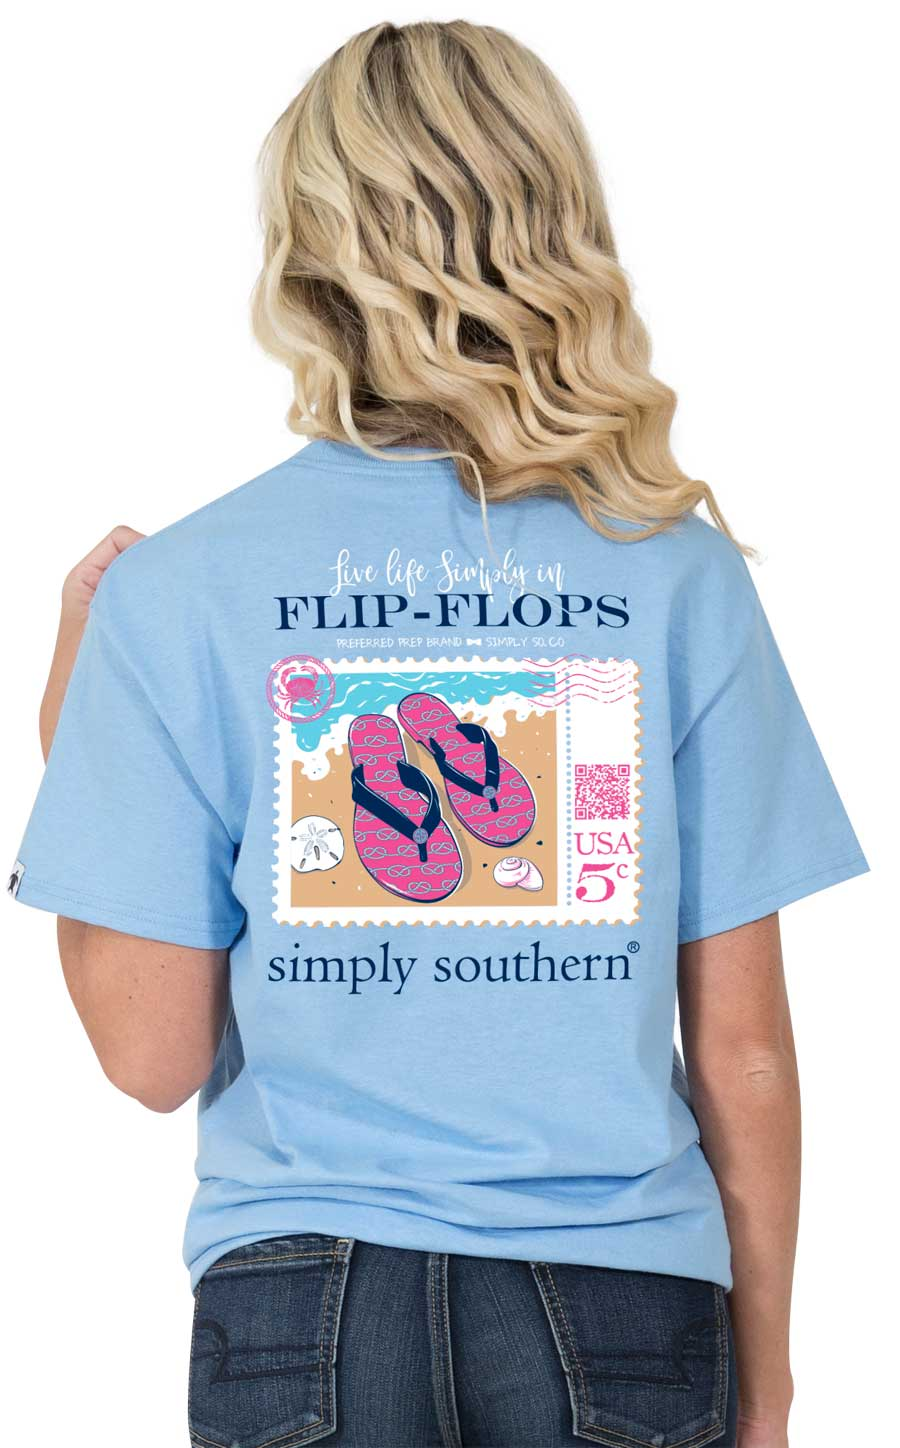 Cute Southern Sayings T Shirts Edge Engineering And Consulting Limited